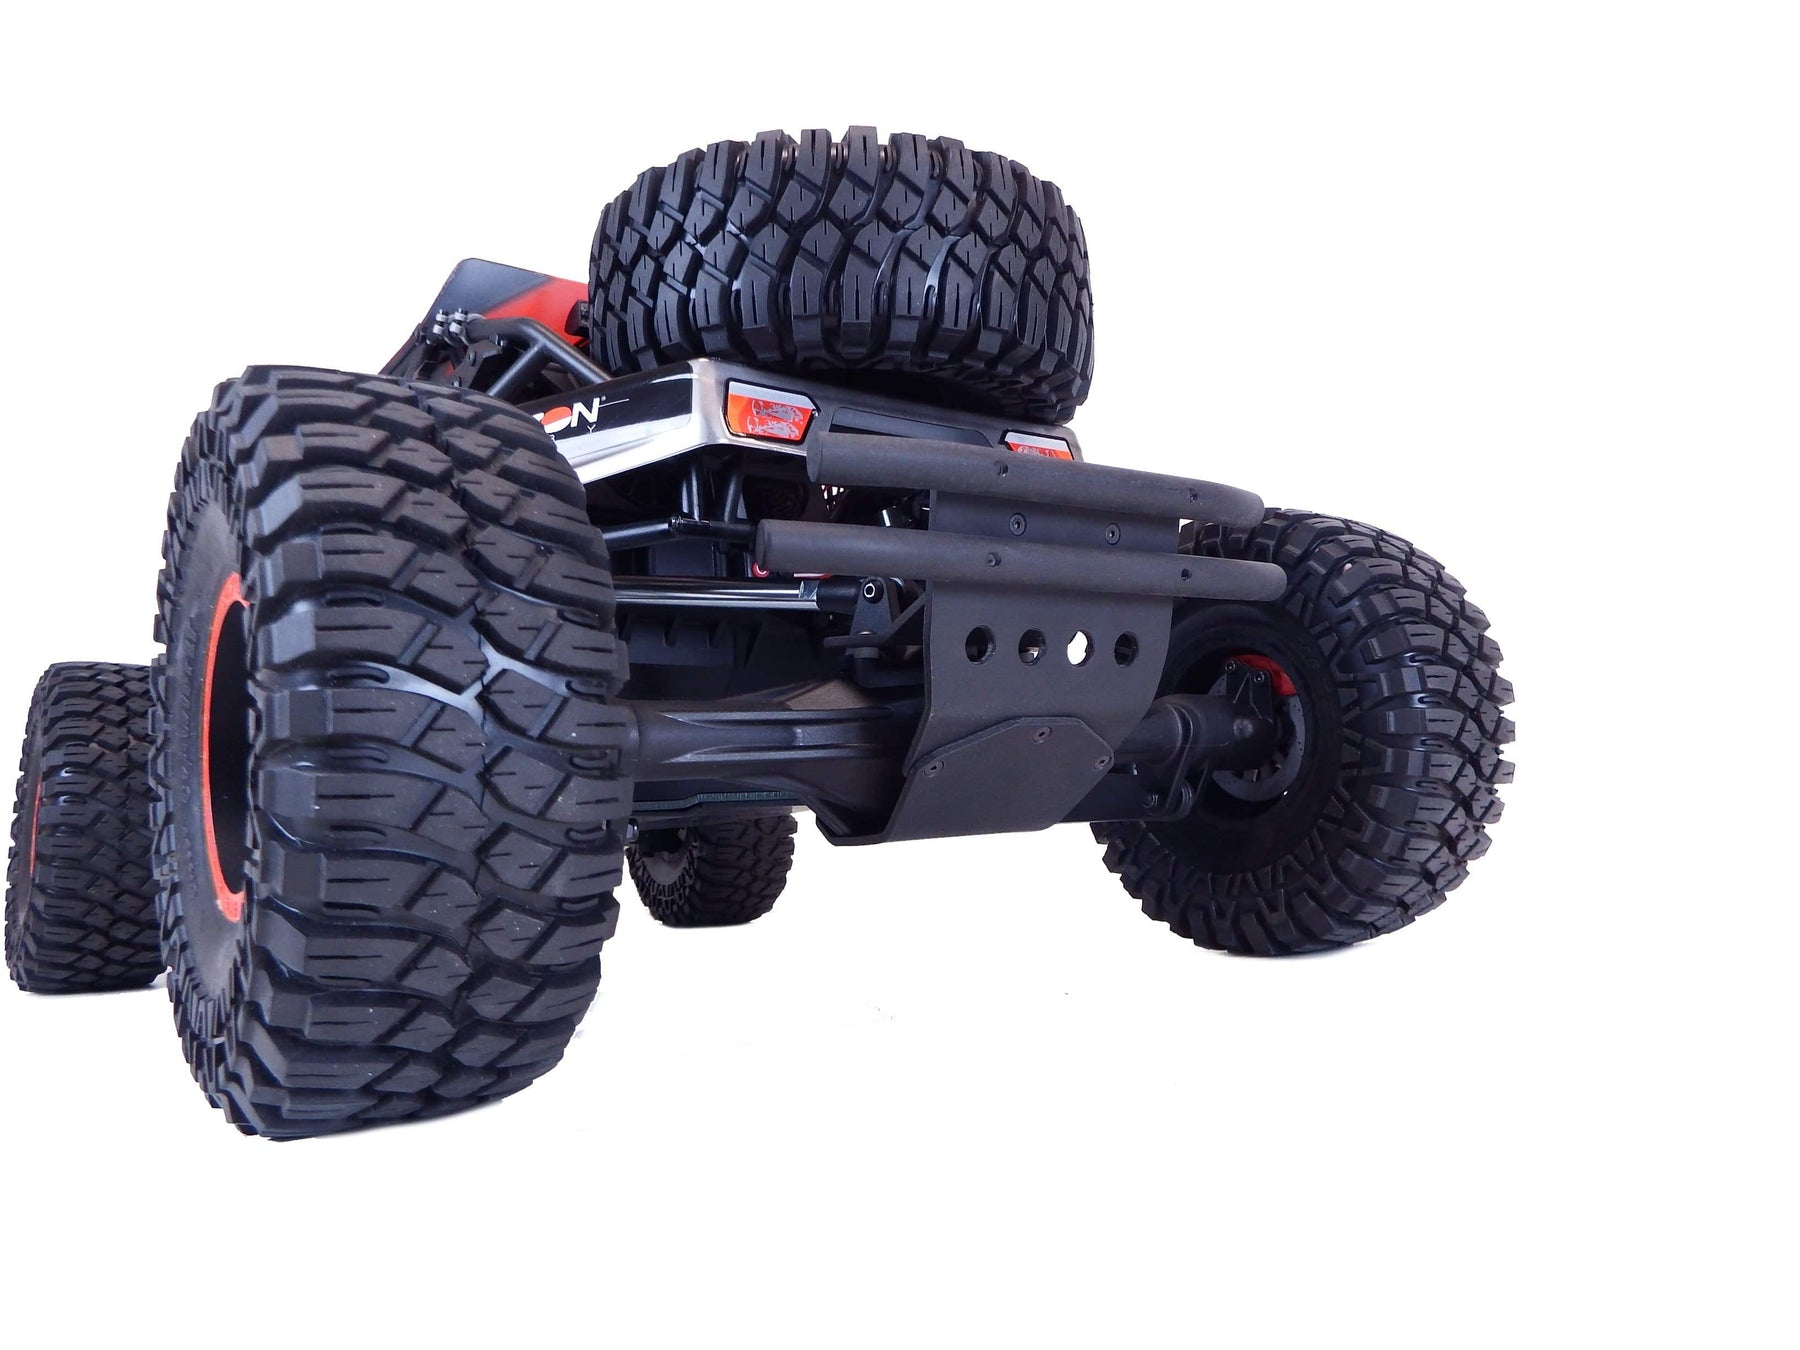 37220 - TBR XV4 Rear Bumper - Losi Super Rock Rey